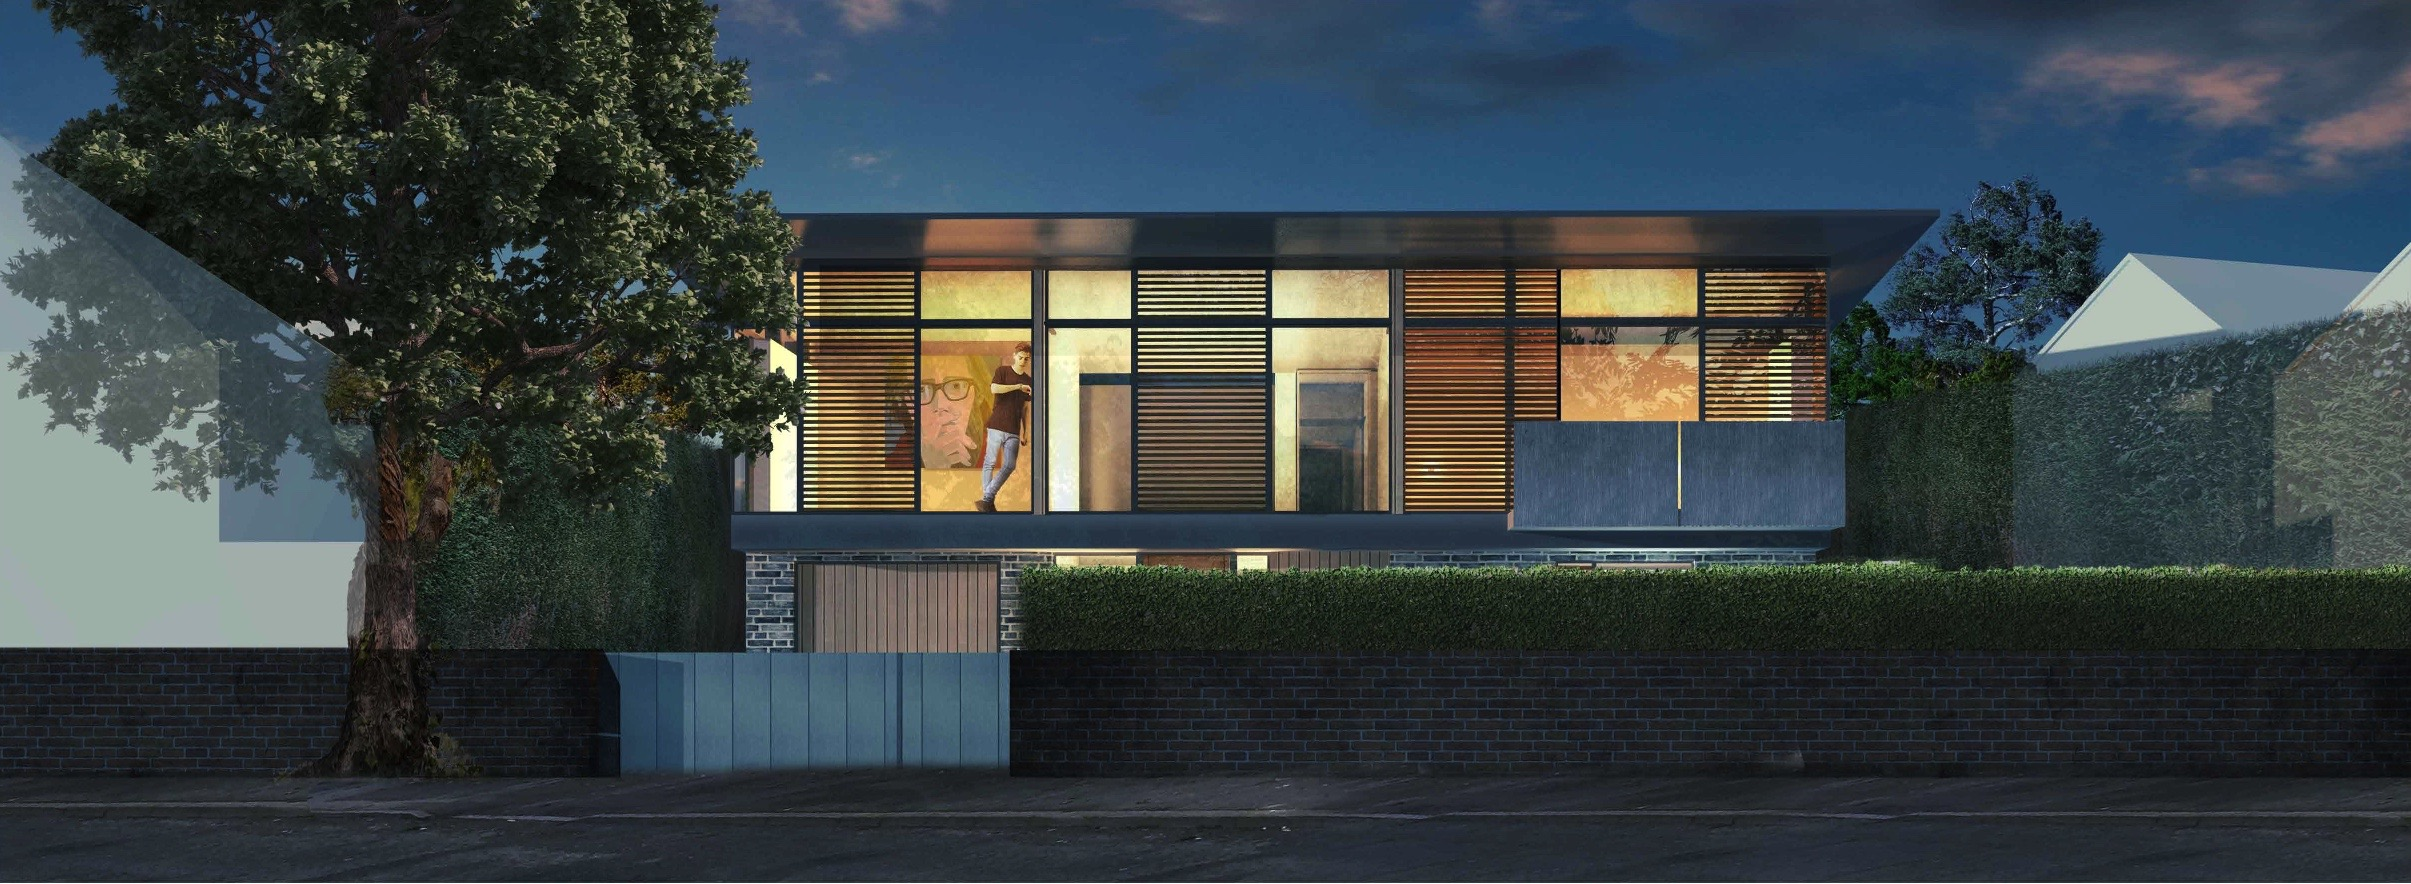 OB_Architecture_Priory_New_Build_Render